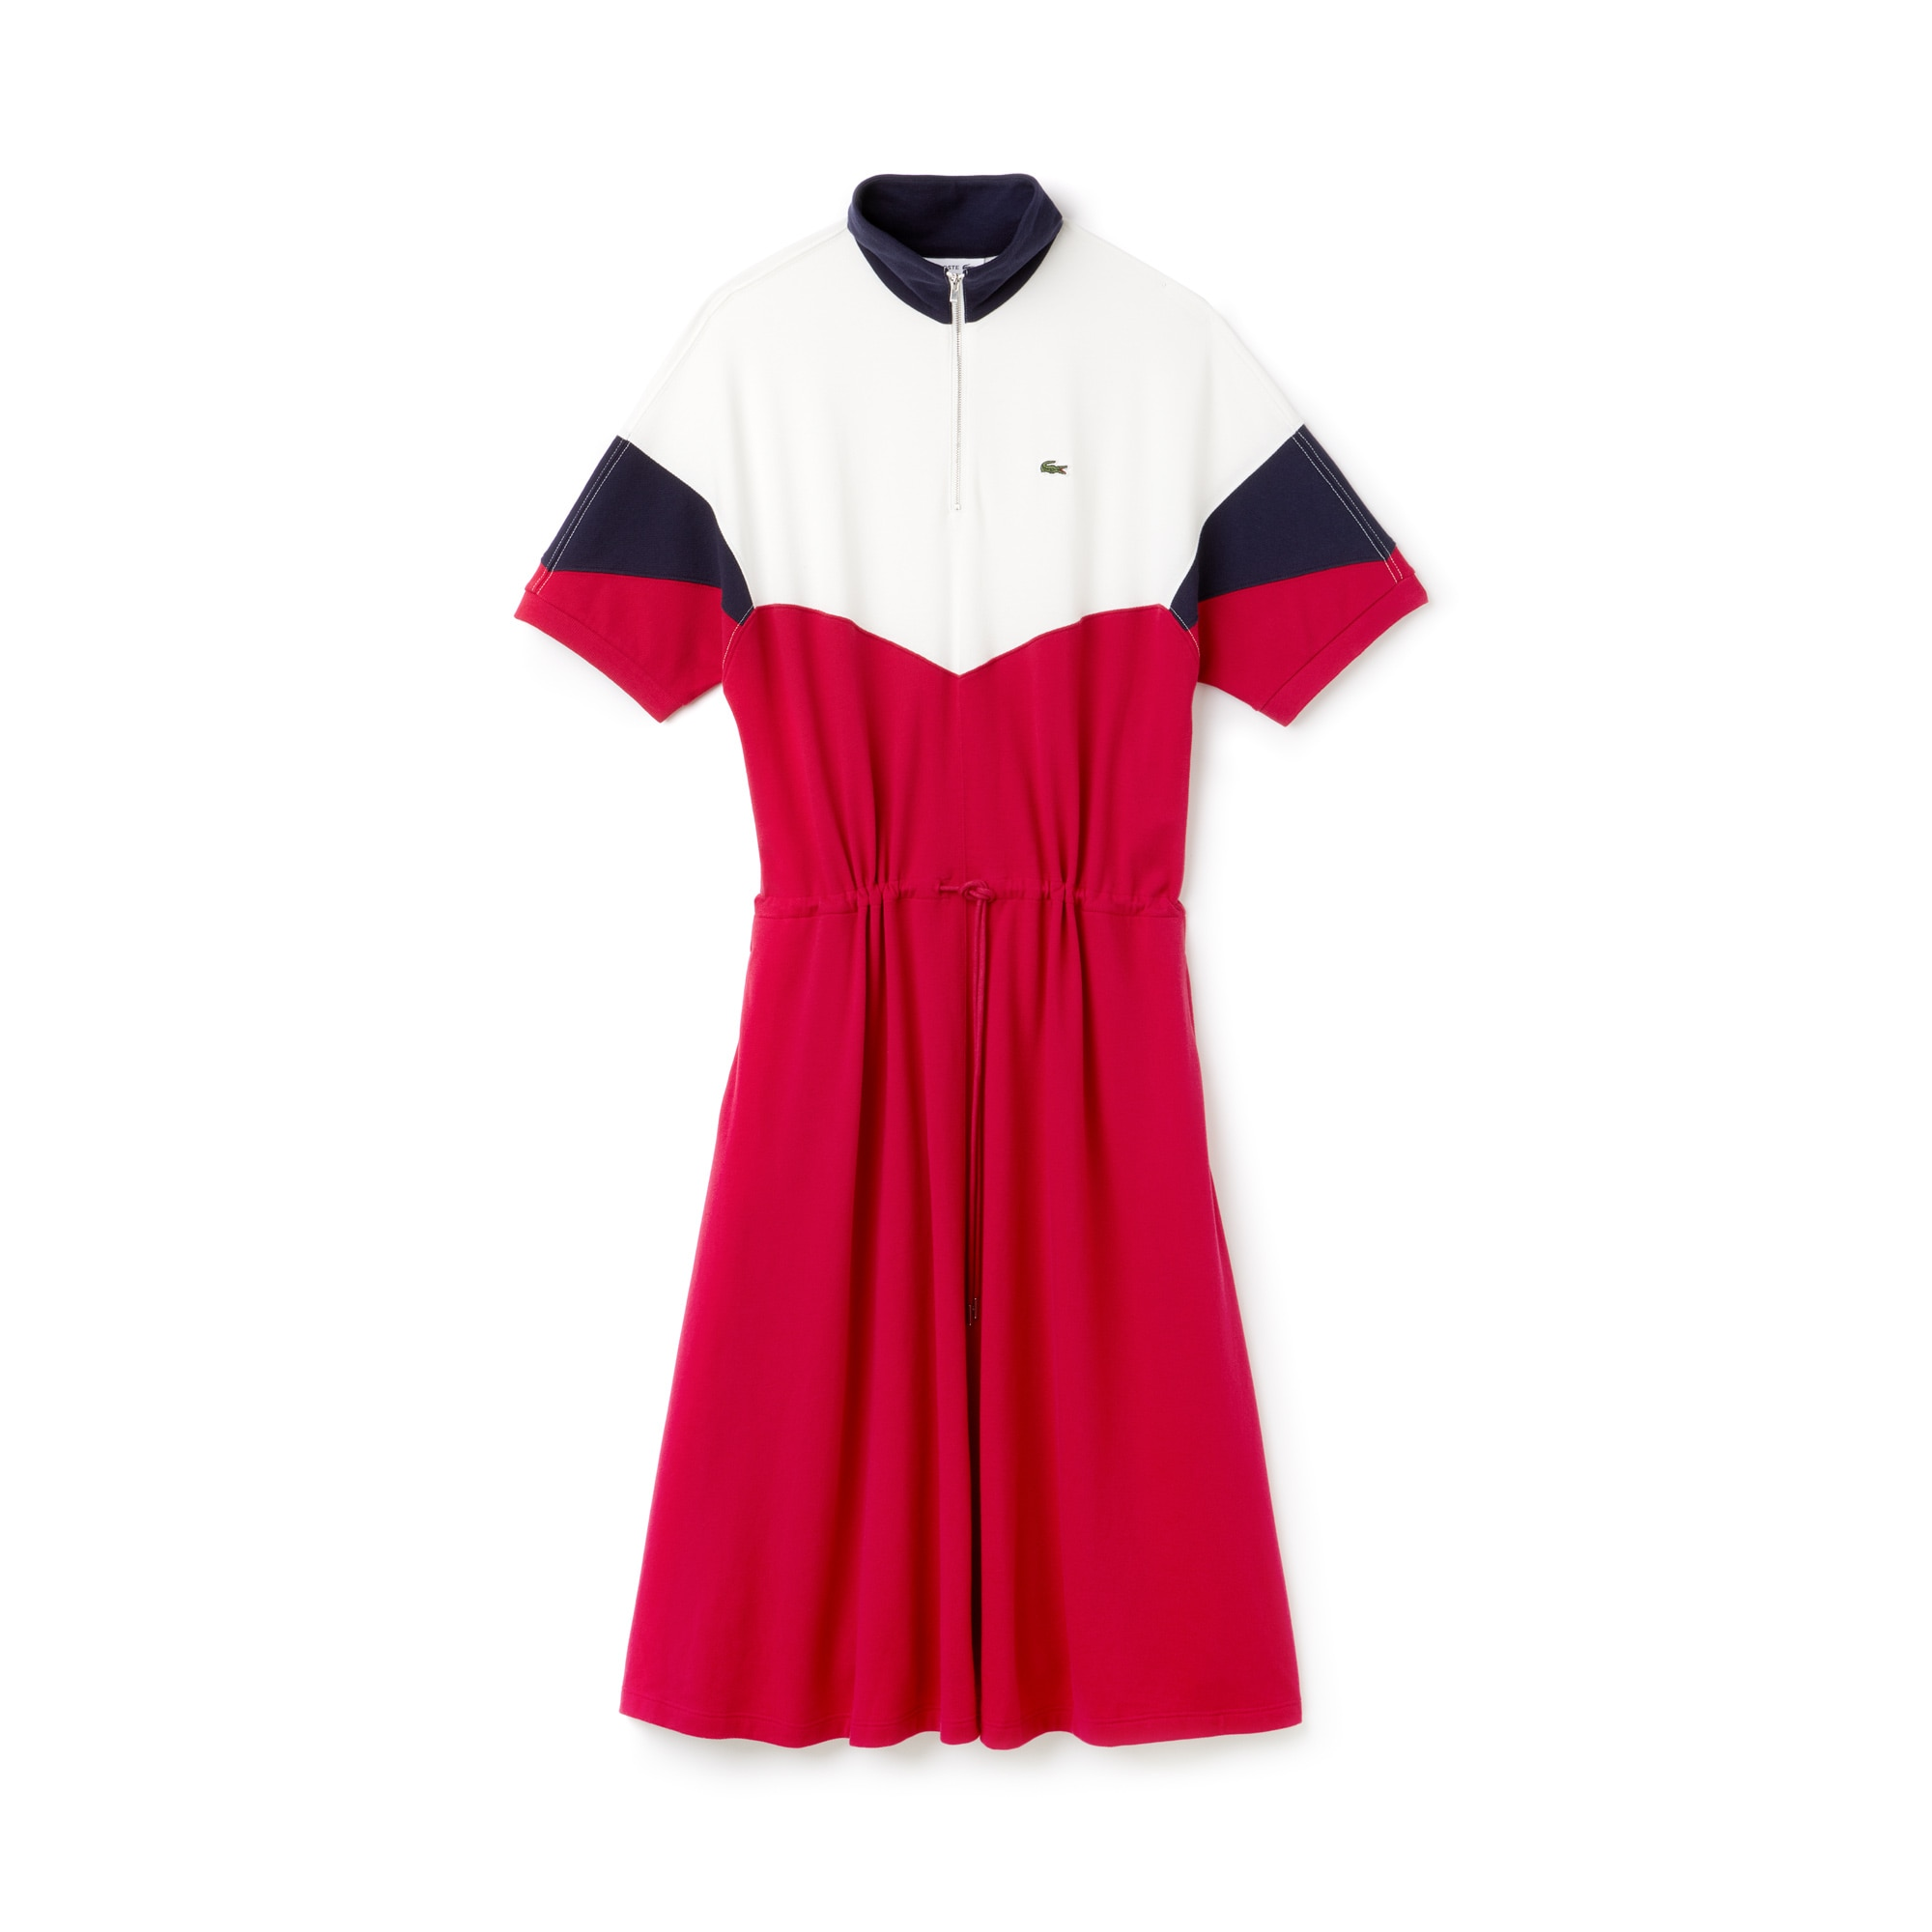 라코스테 원피스 Lacoste Womens Fitted Colorblock Terrycloth Pique Polo Dress,PERSIAN RED/NAVY BLUE-FLO